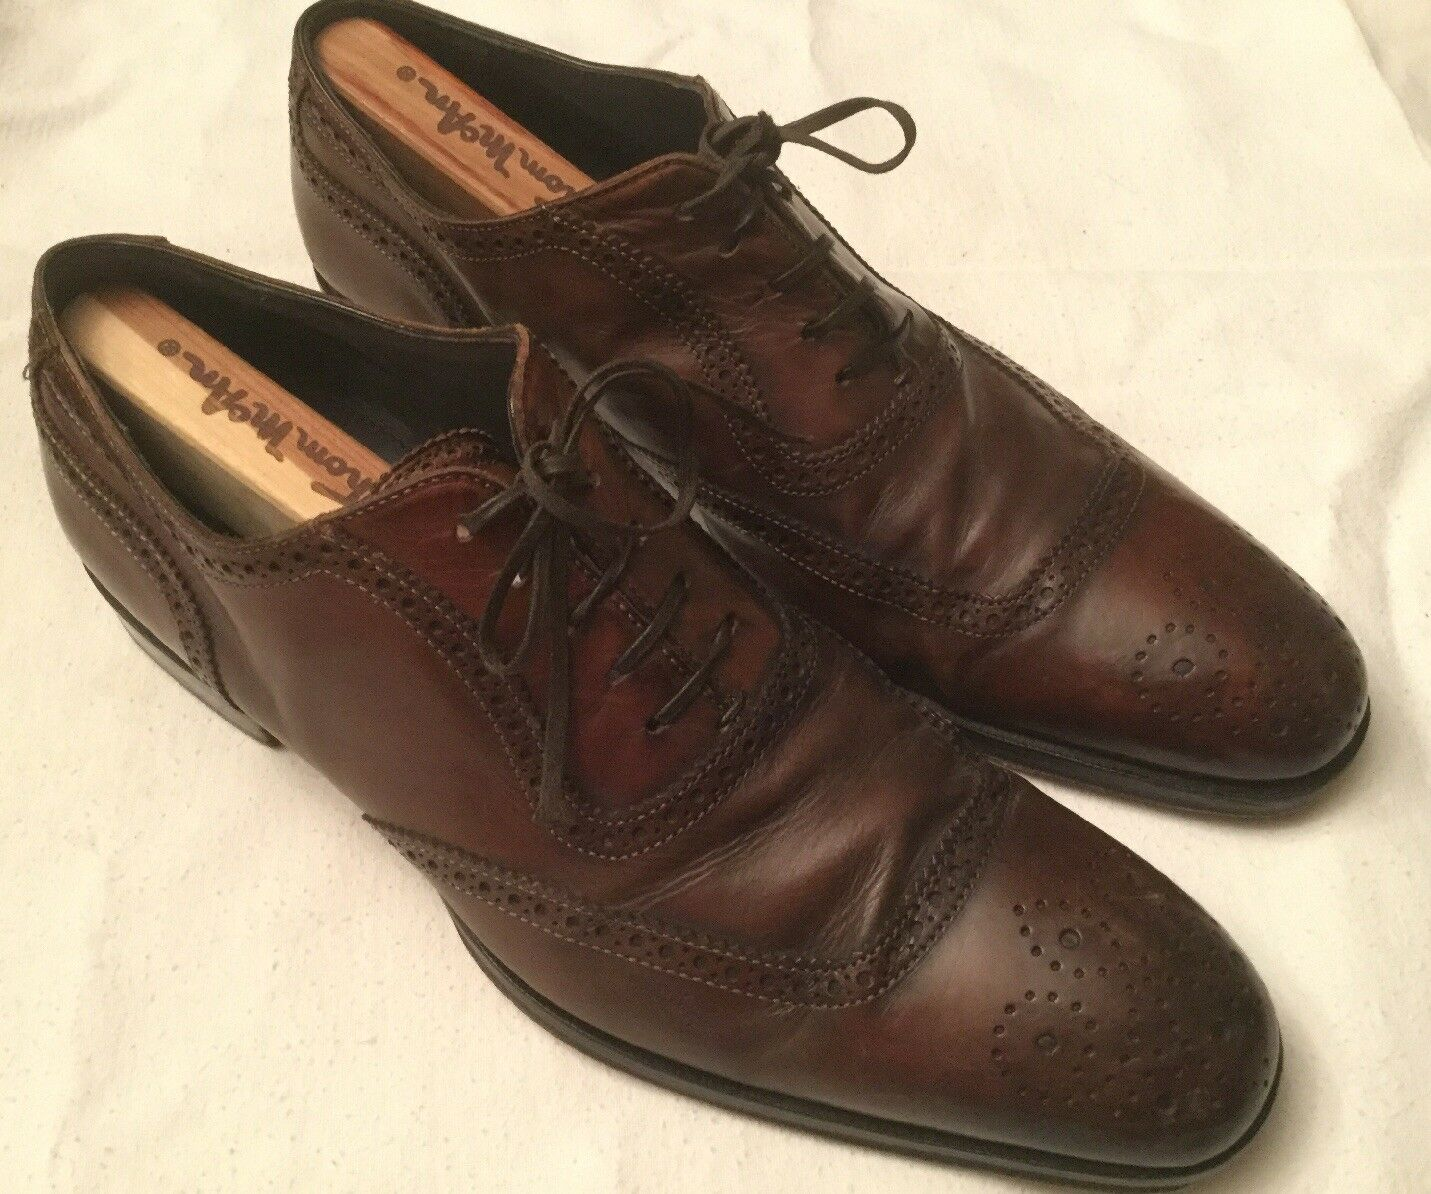 To Stiefel New York Brogue Wingtip Oxford Dress schuhe 9